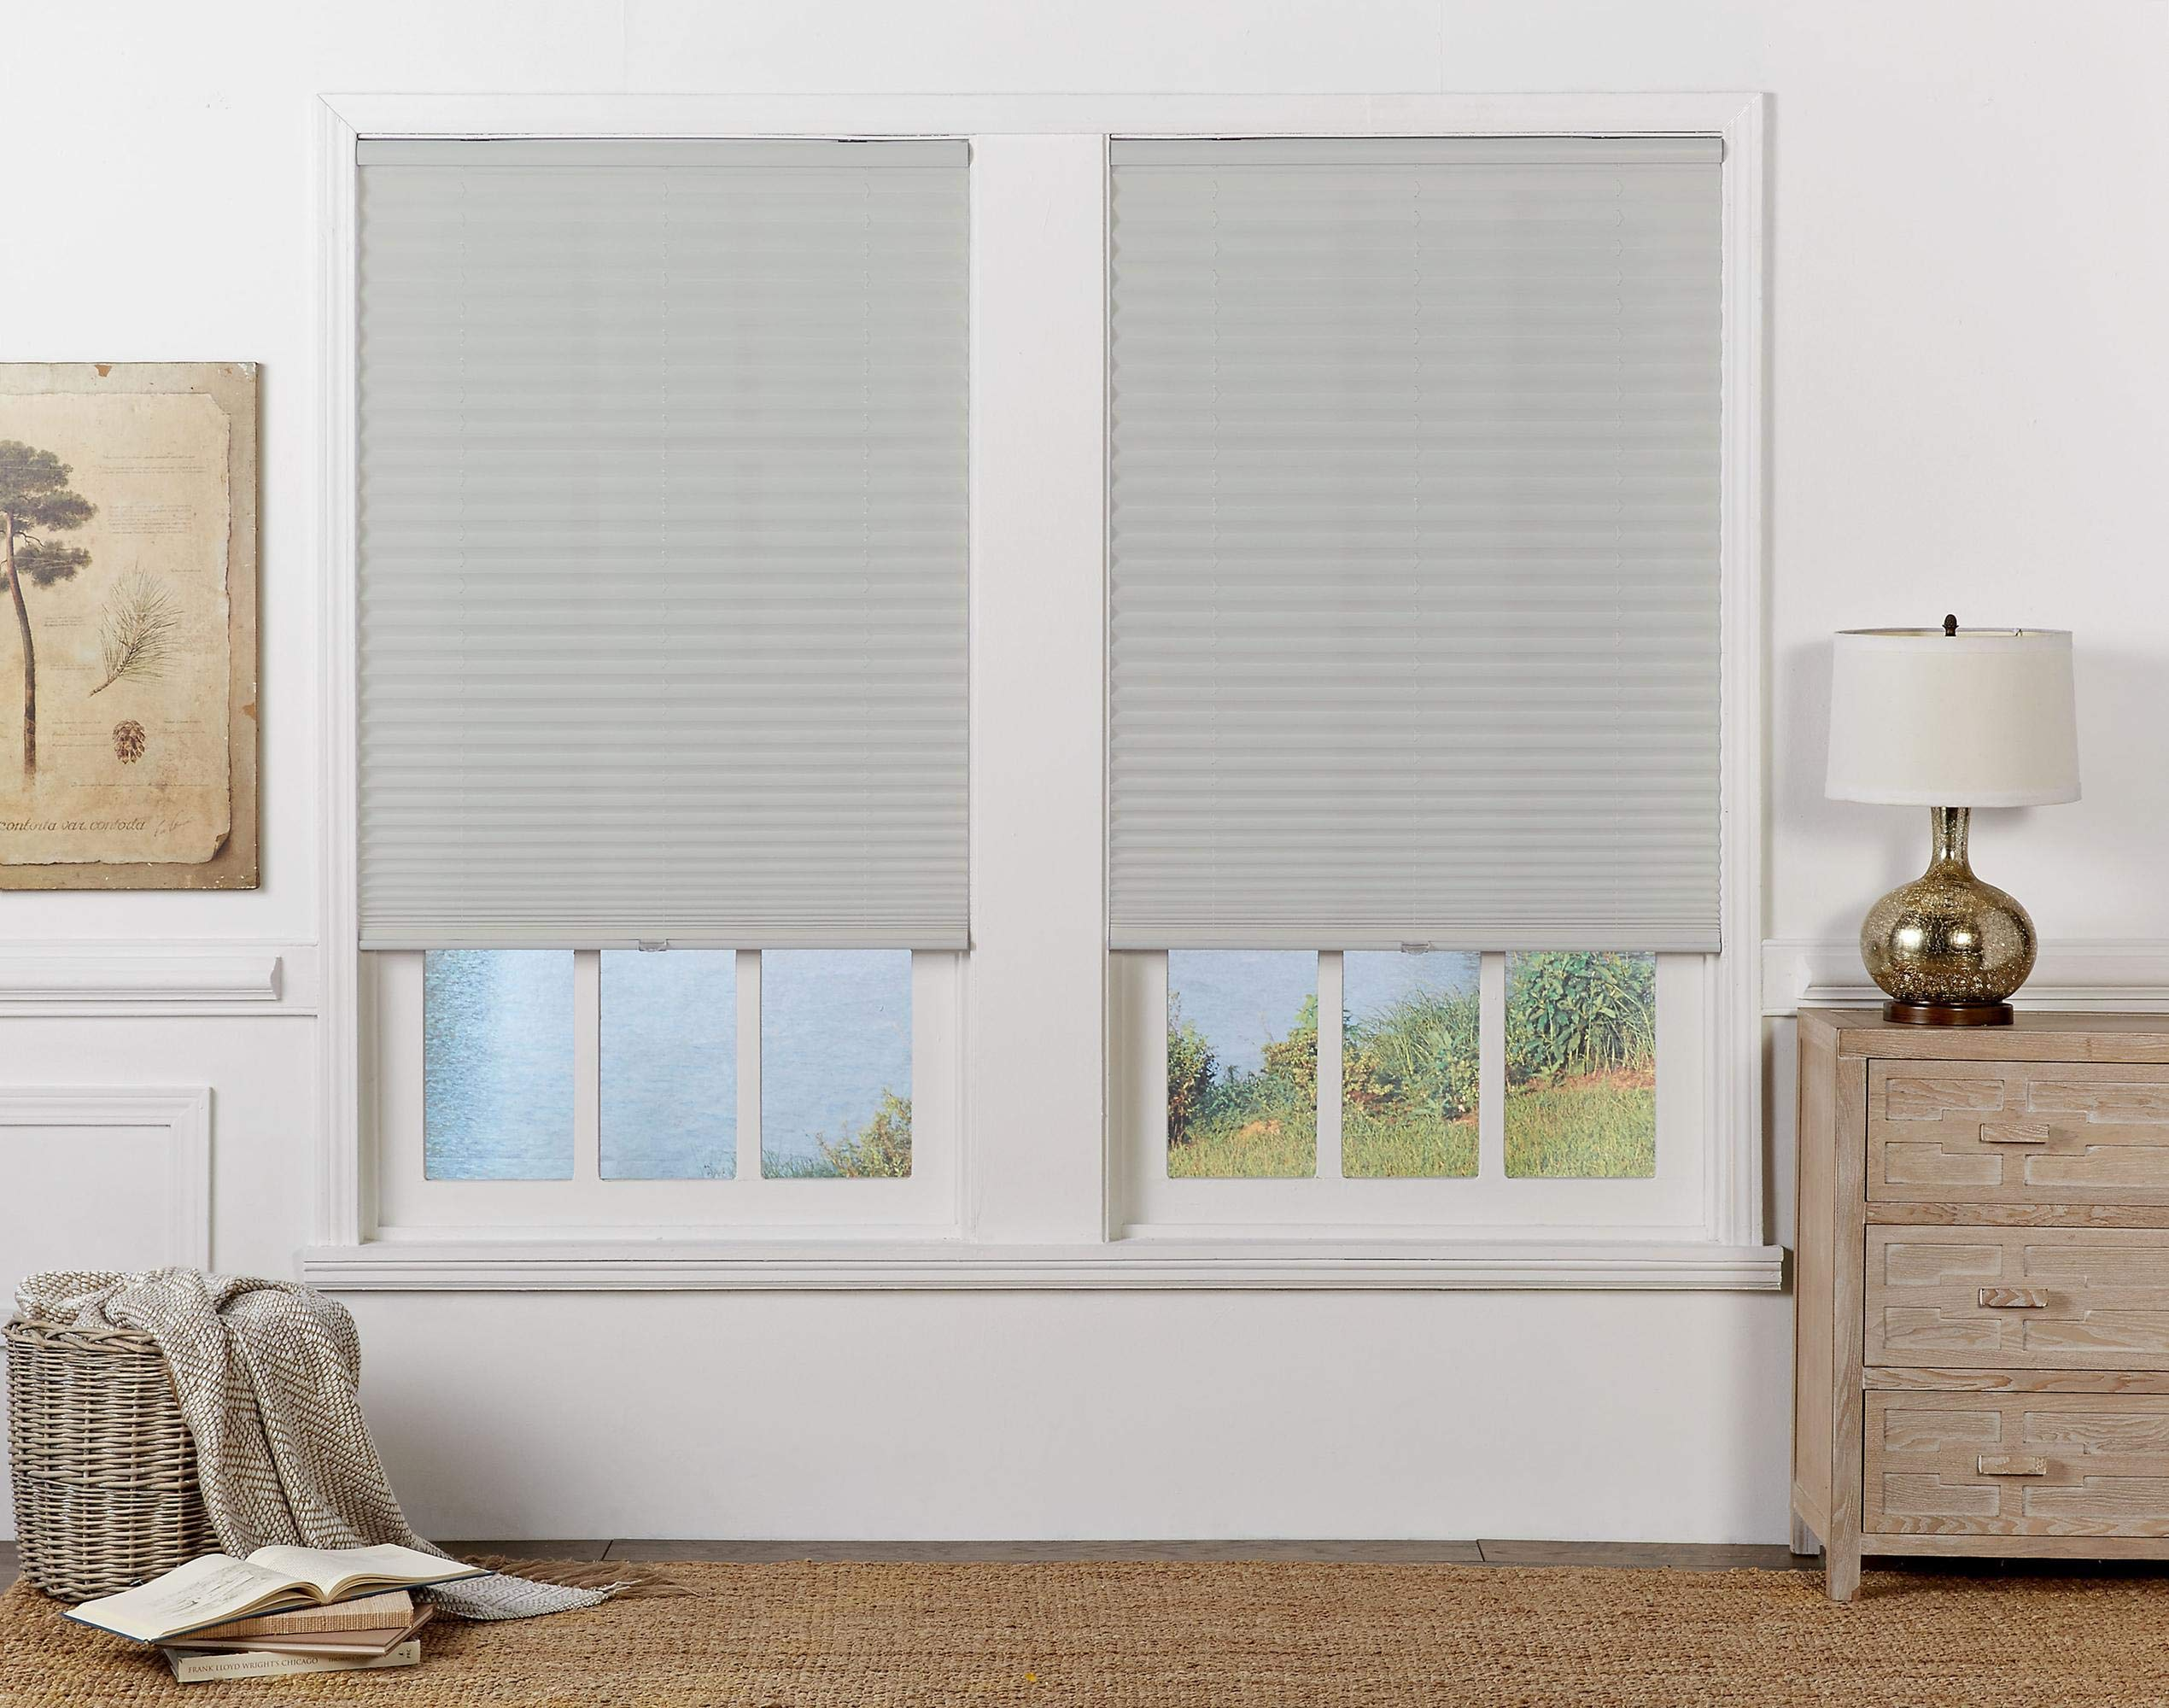 DEZ Furnishings QDLG700720 Cordless Light Filtering Pleated Shade 70W x 72L Inches Silver Gray